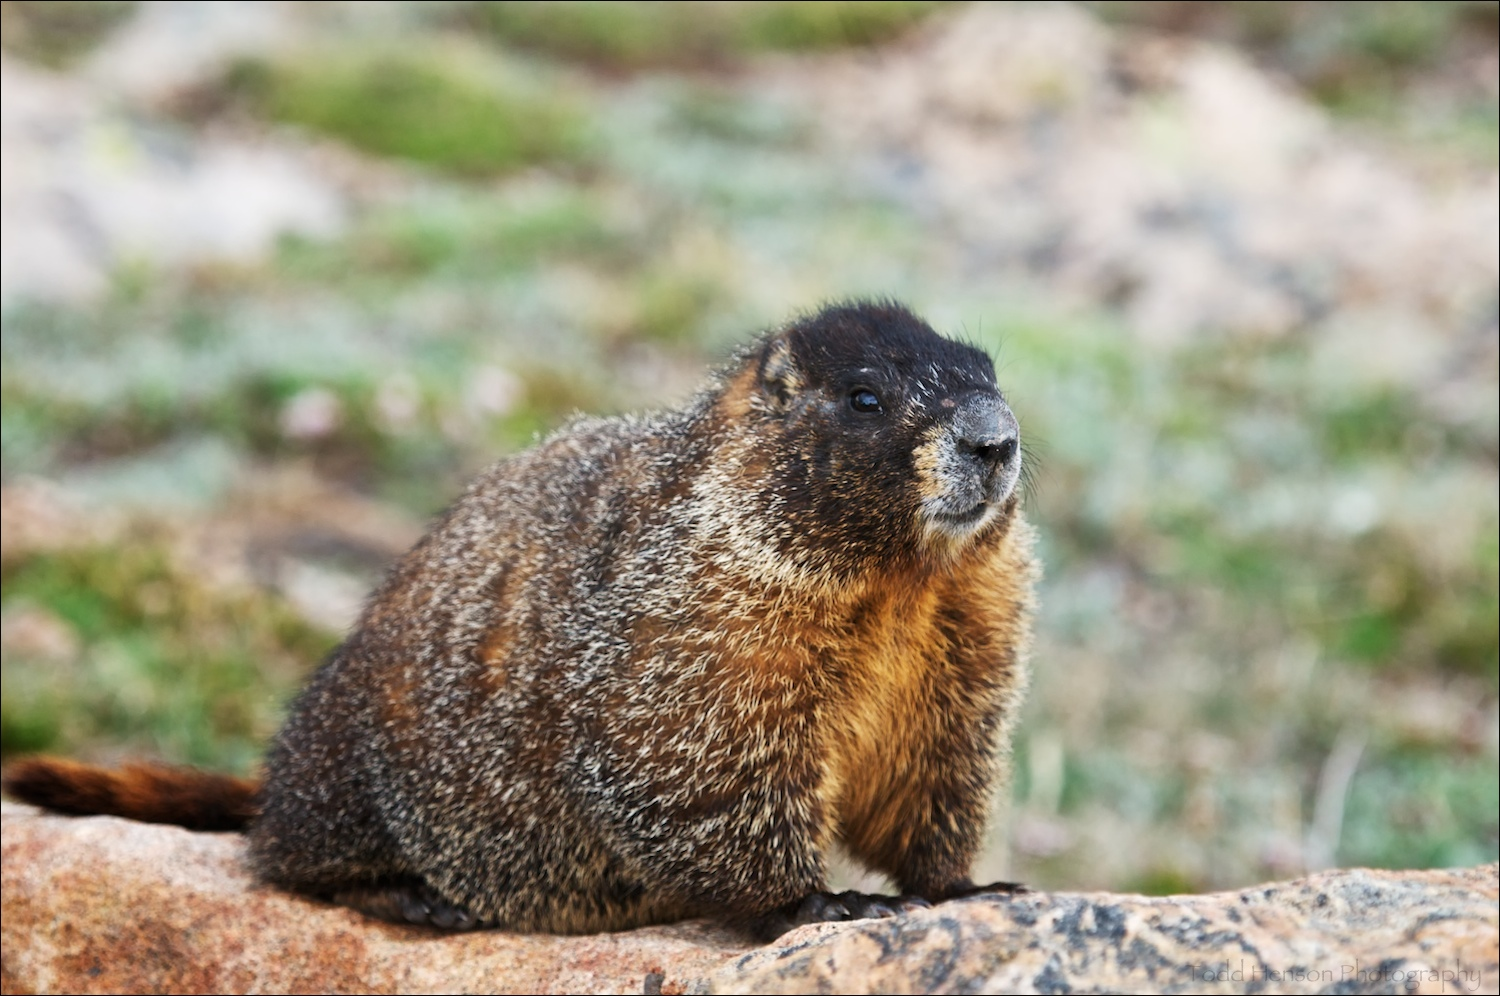 Yellow-bellied Marmot staring me down. Shortly afterwards it tried crawling into the underside of my car